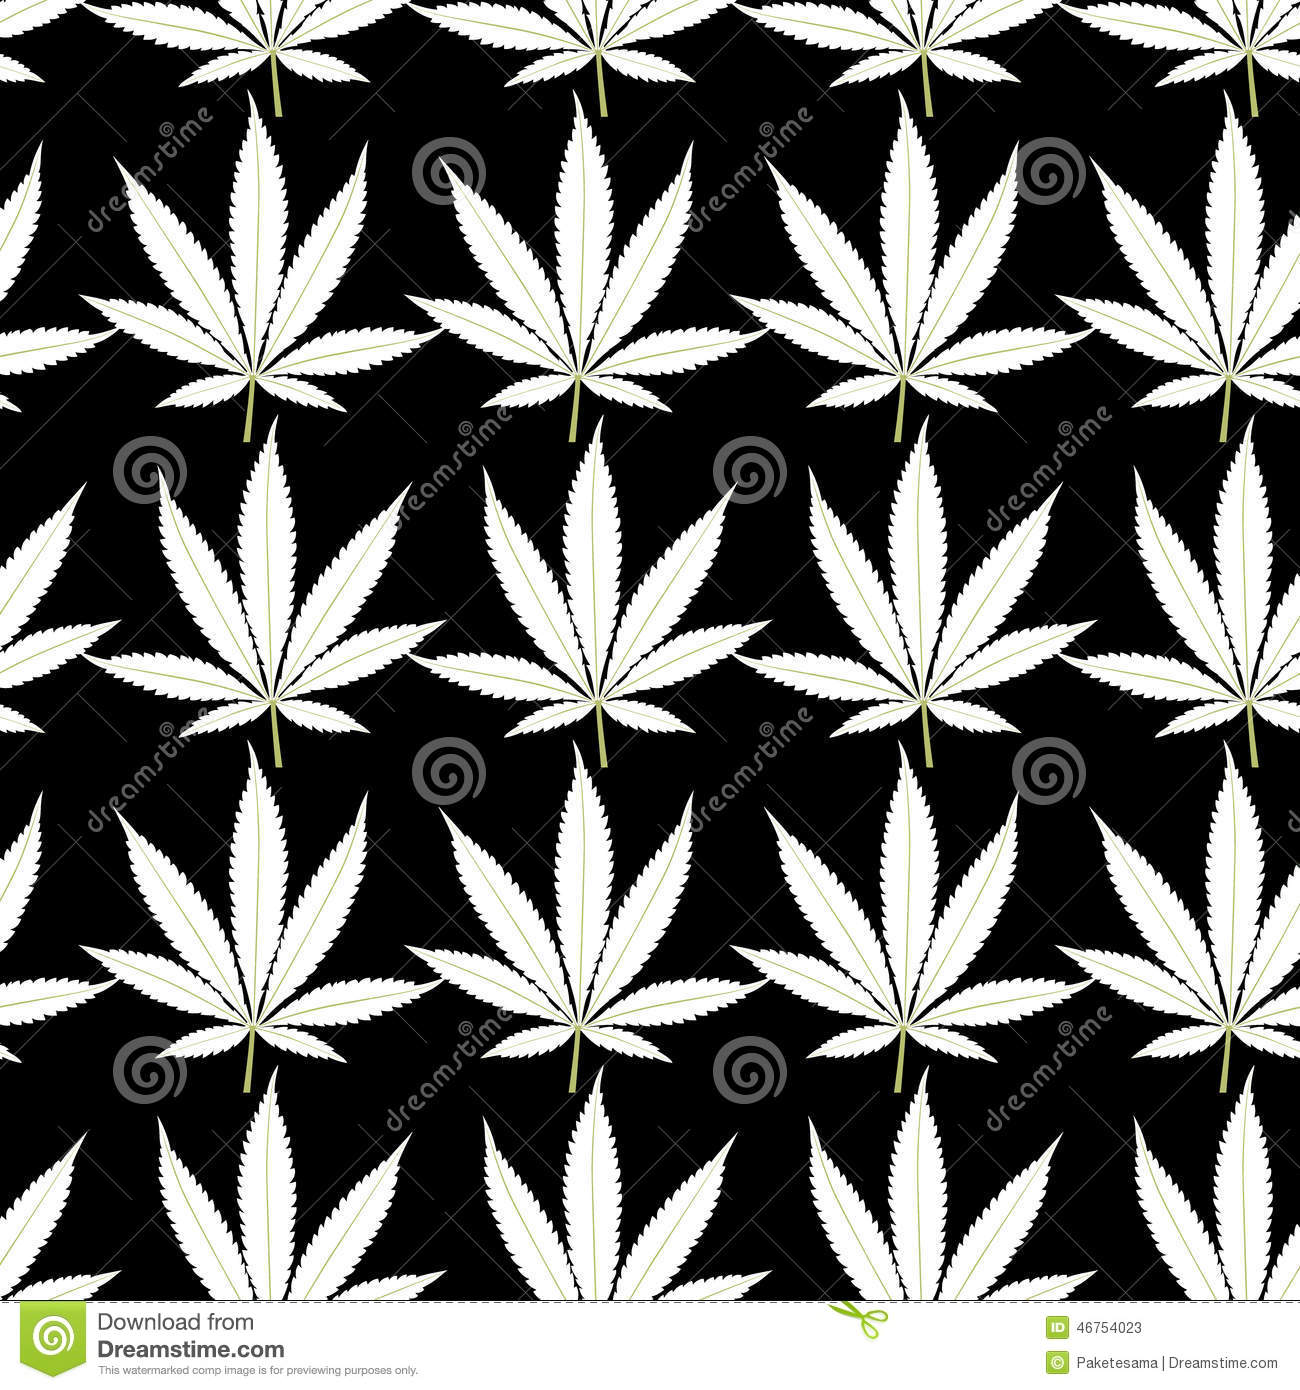 Wallpaper Foglia di Marijuana